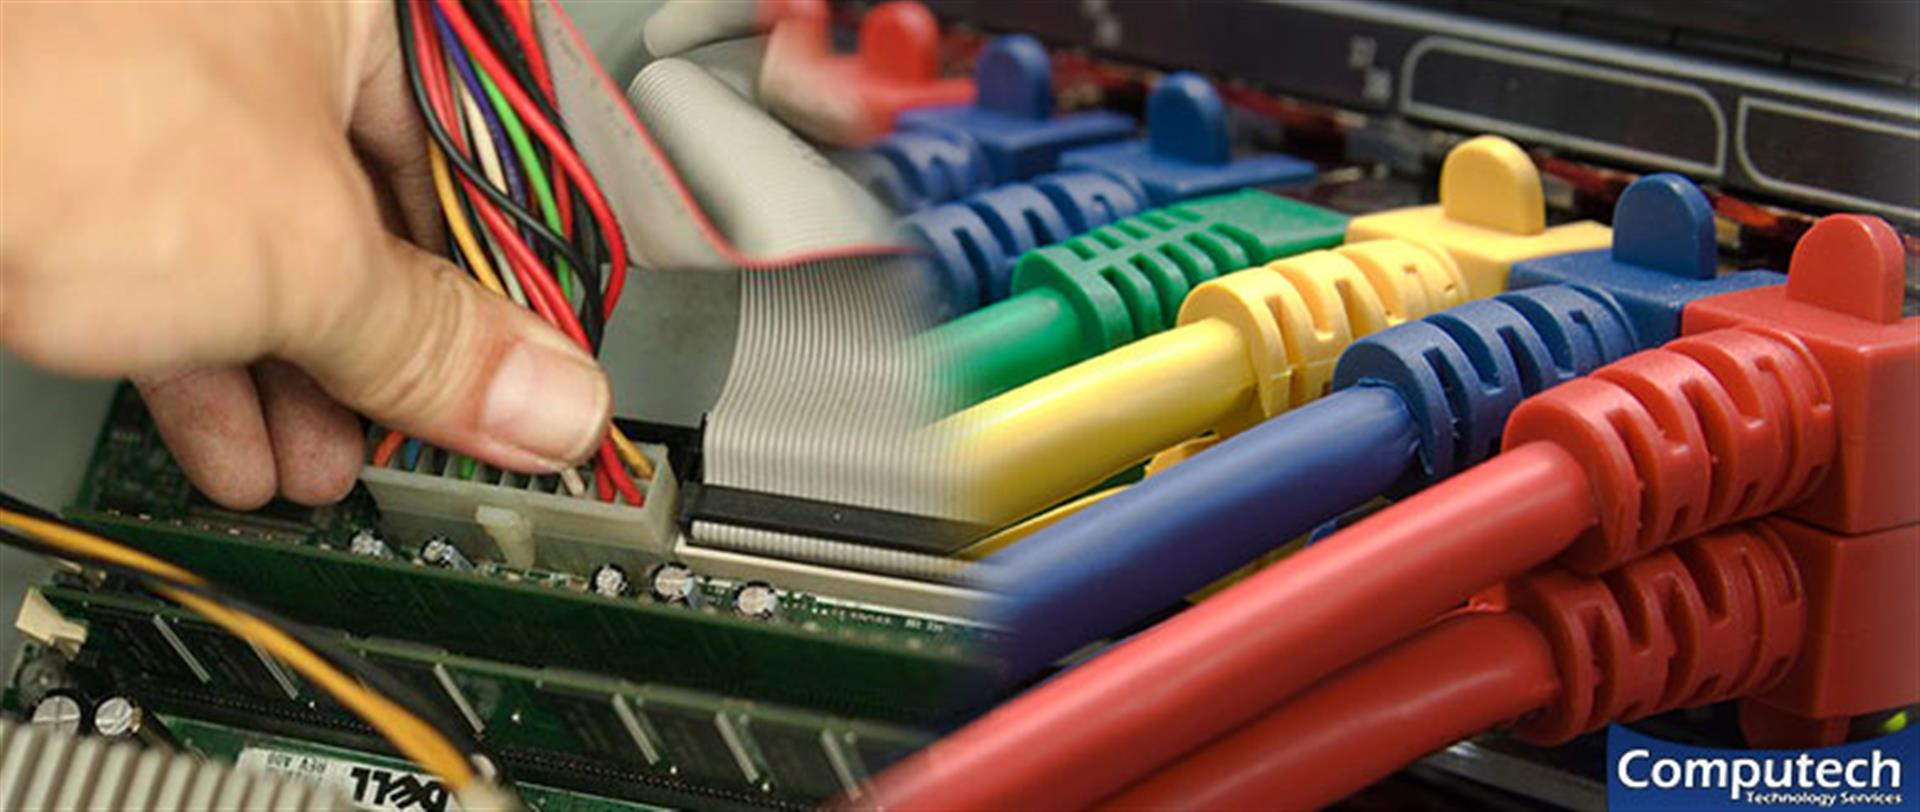 Clarksville Tennessee Onsite PC & Printer Repairs, Networking, Voice & Data Cabling Solutions